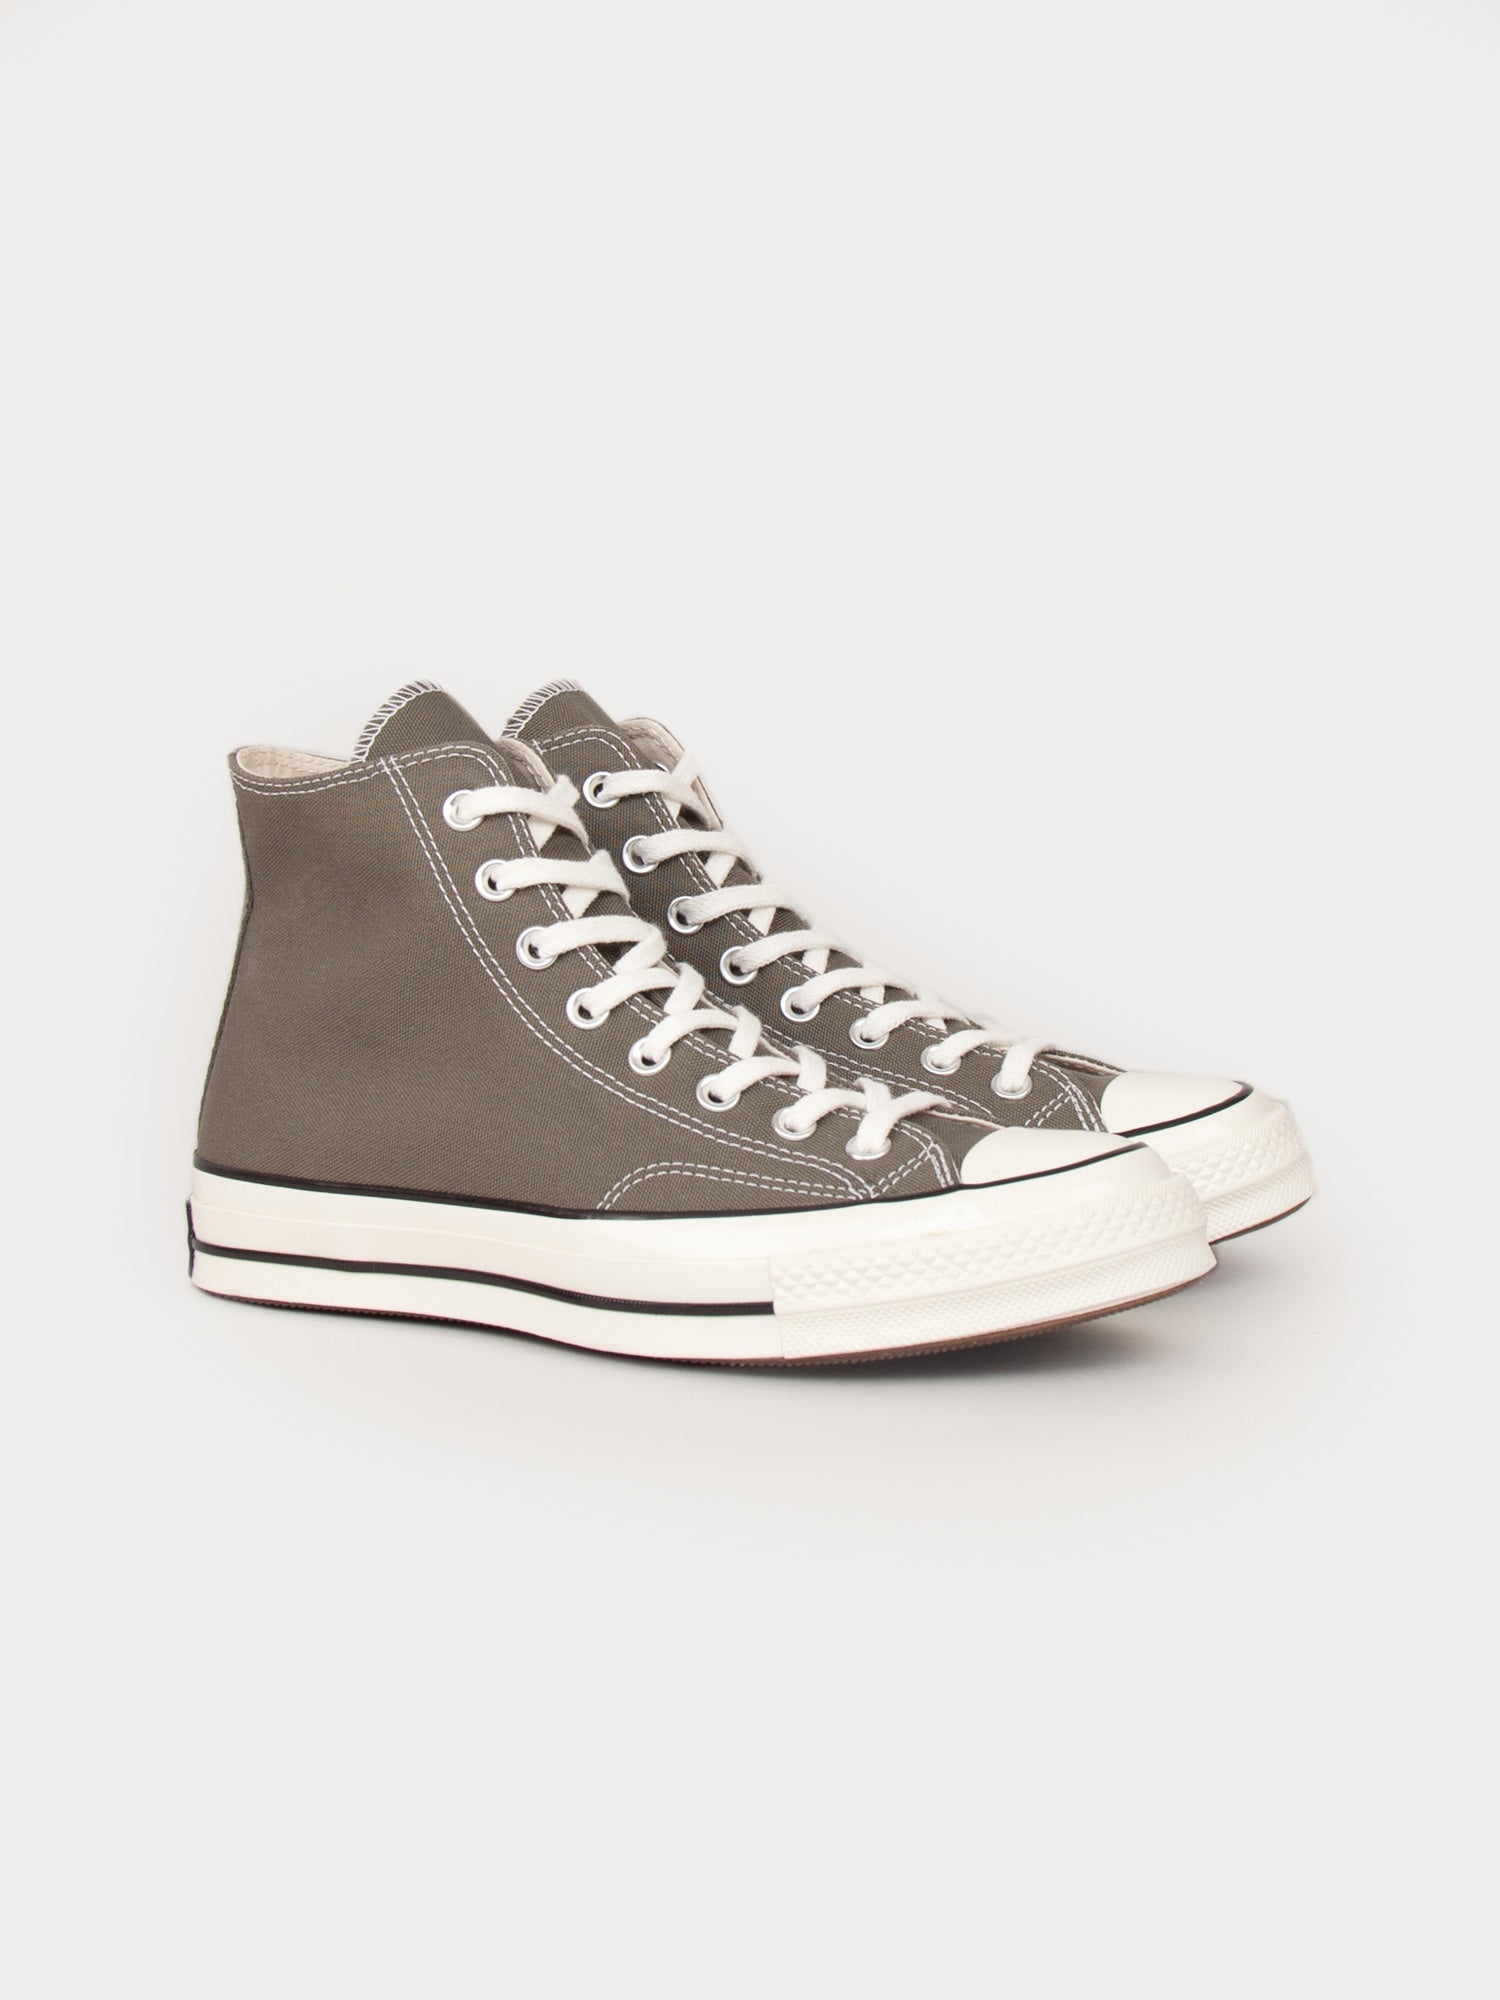 3bff7725a7dee2 Converse-Chuck-Taylor-All-Star-70 -Hi- Field-Surplus -2.jpg v 1533122049